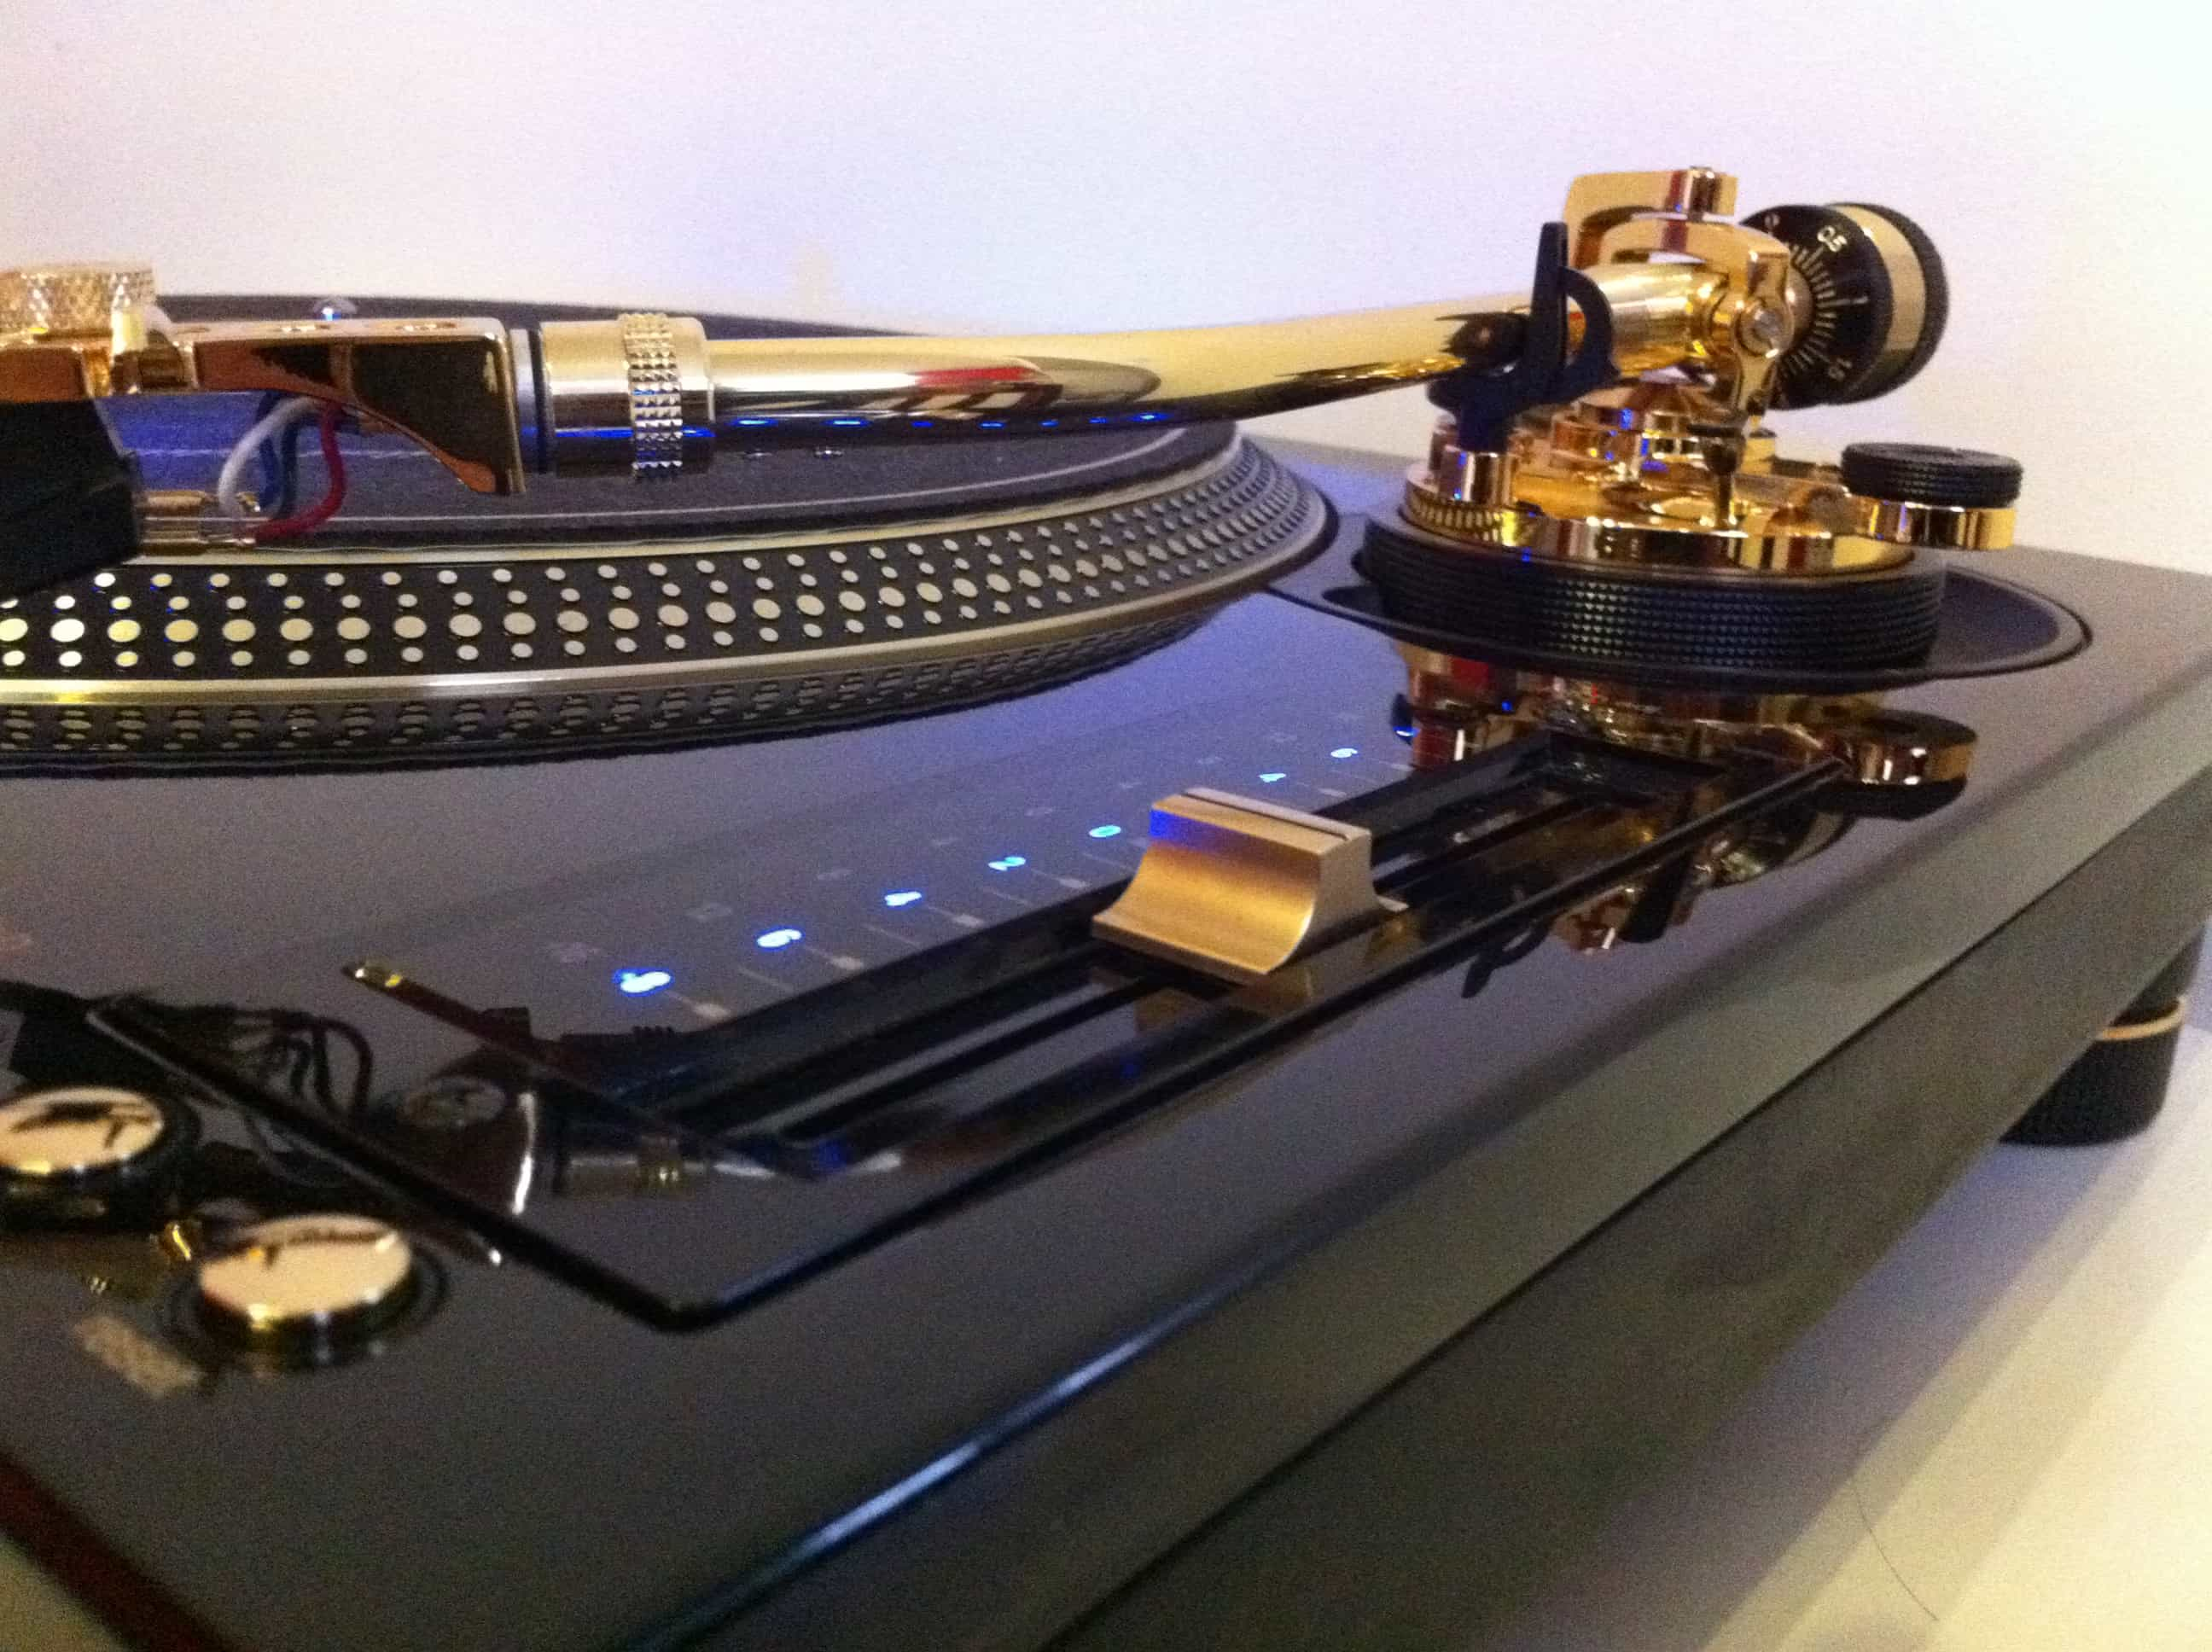 TECHNICS TURNTABLE SERIES RELAUNCHES IN 2016